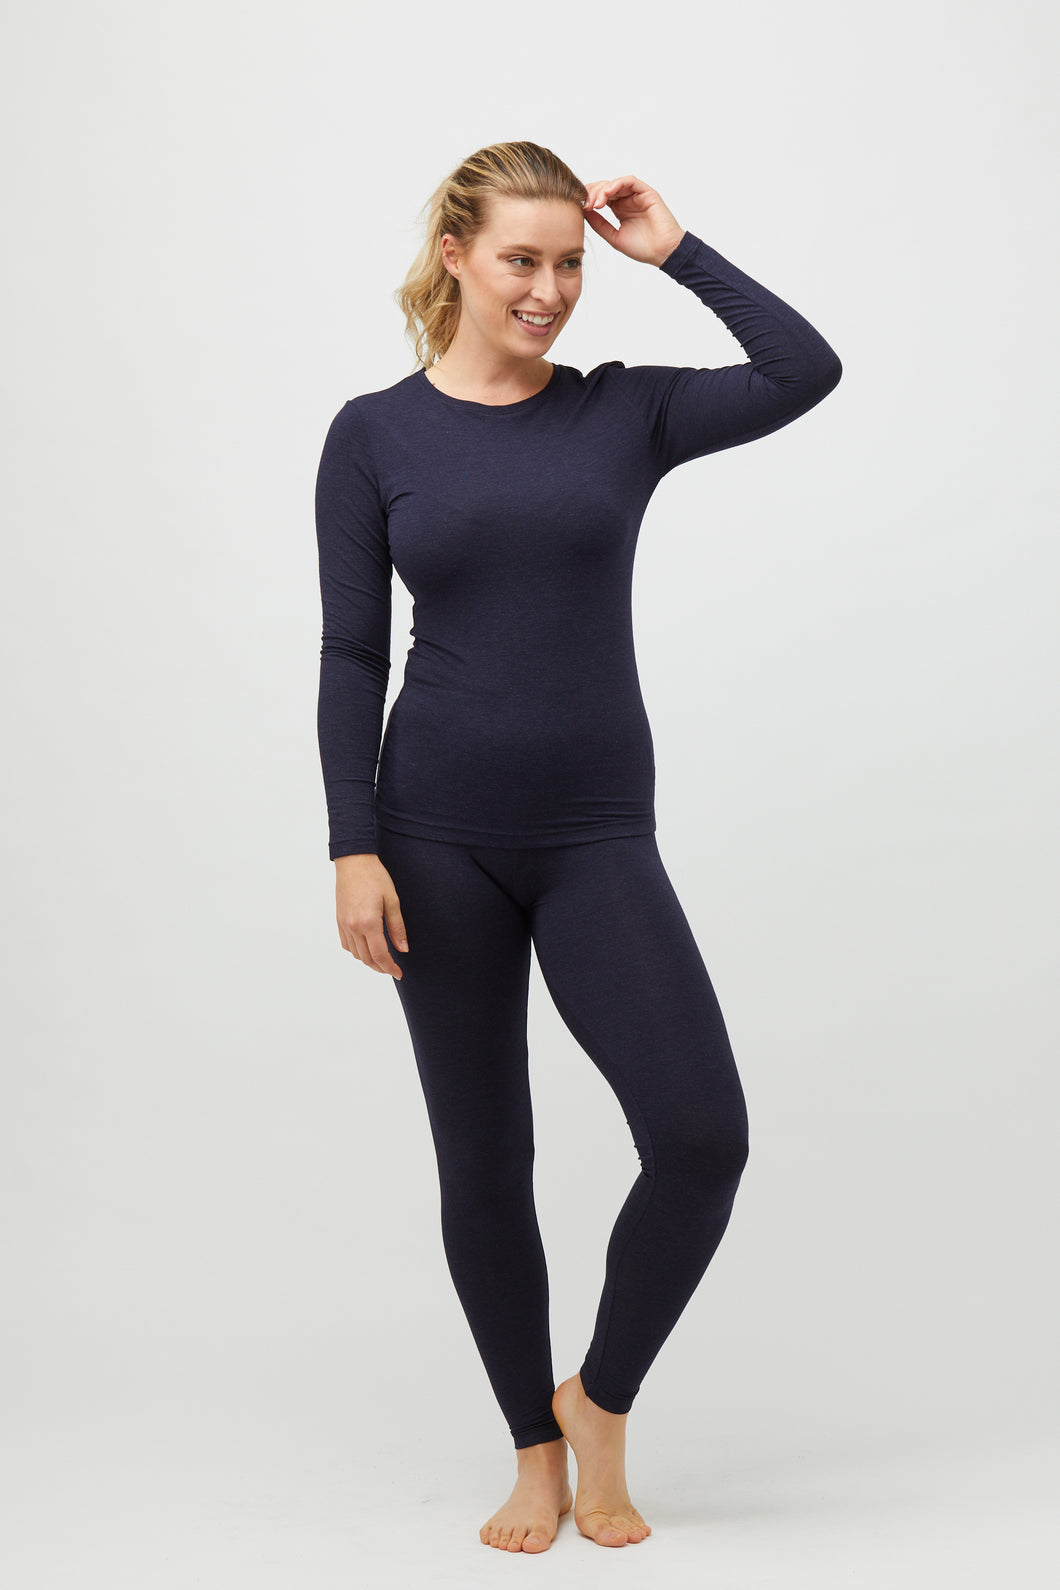 Tani Full Leggings.    Midnight Marl.   Sizes:  S  XL  XXL.